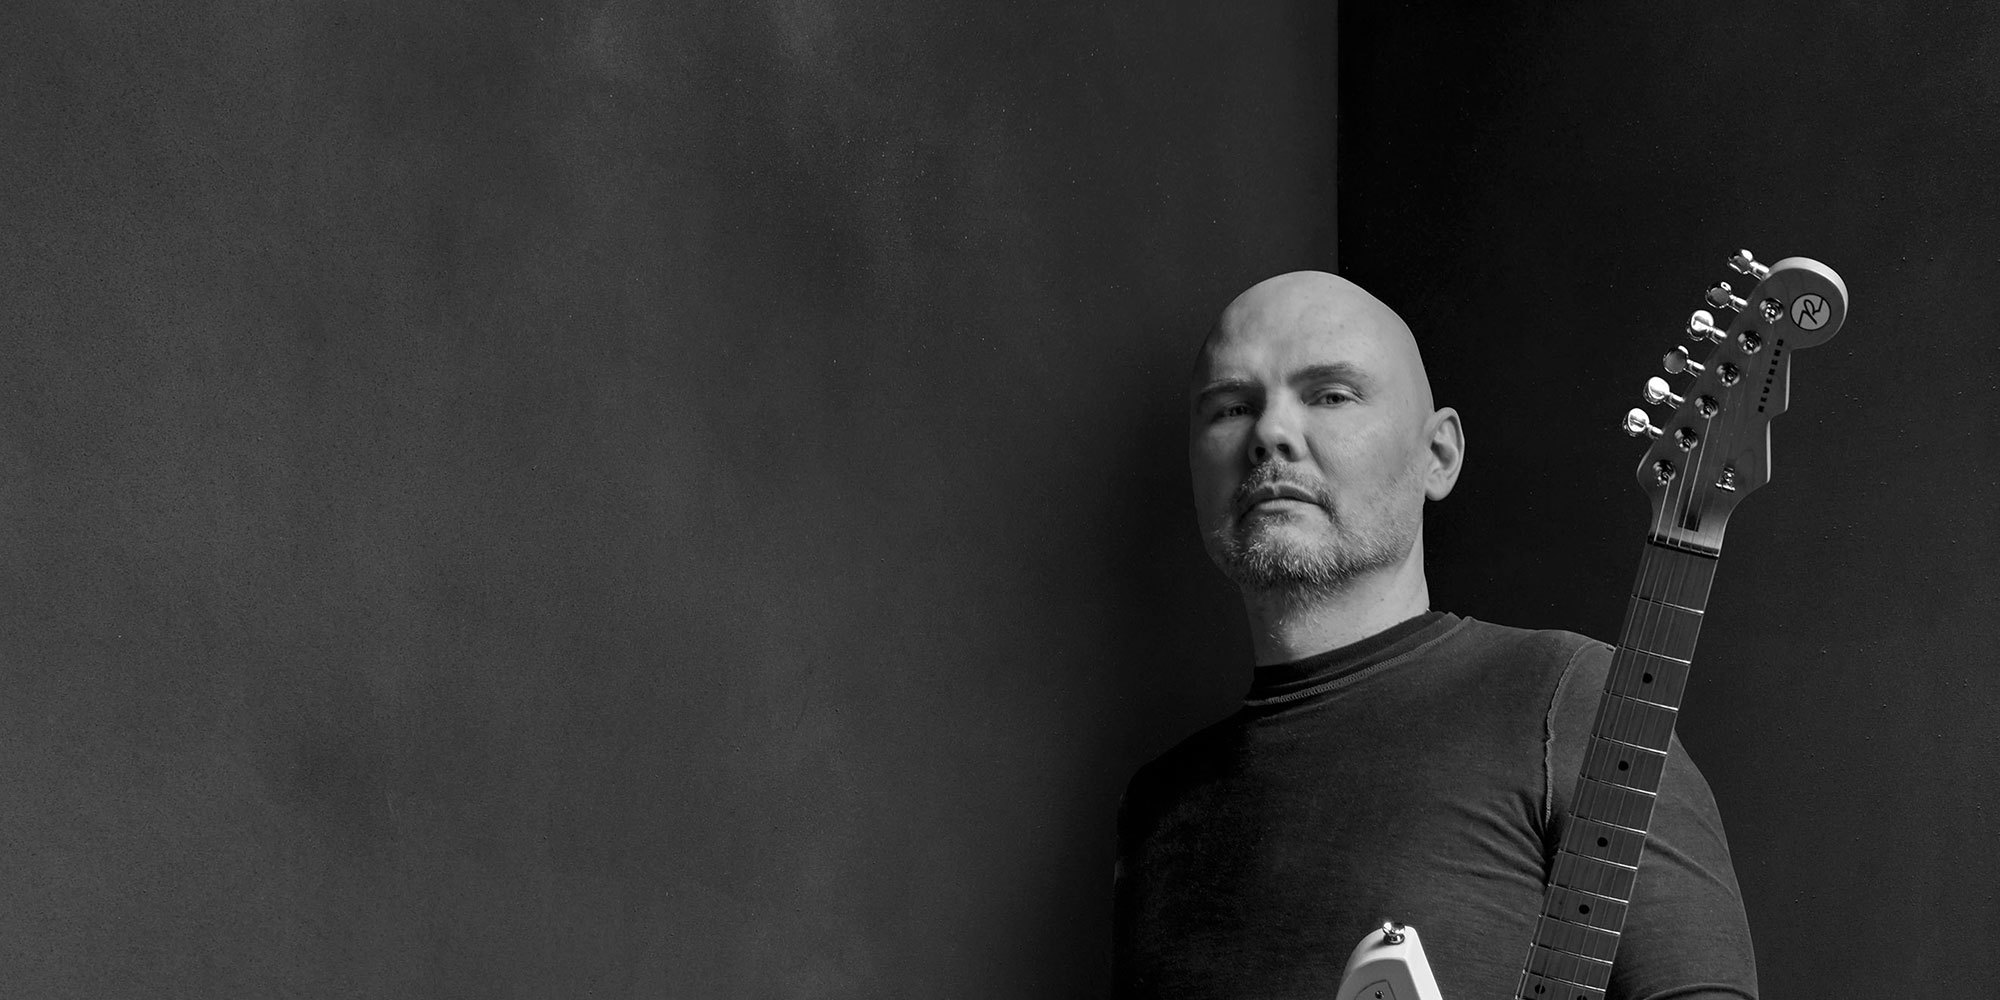 The new Reverend BC1 Billy Corgan signature guitar captures the wide array of tones the Smashing Pumpkins mastermind has crafted and traded on for years. Corgan and Joe Naylor of Reverend sit down to discuss the challenges of sonic diversity, guitar design and nailing that signature wide gain tone.